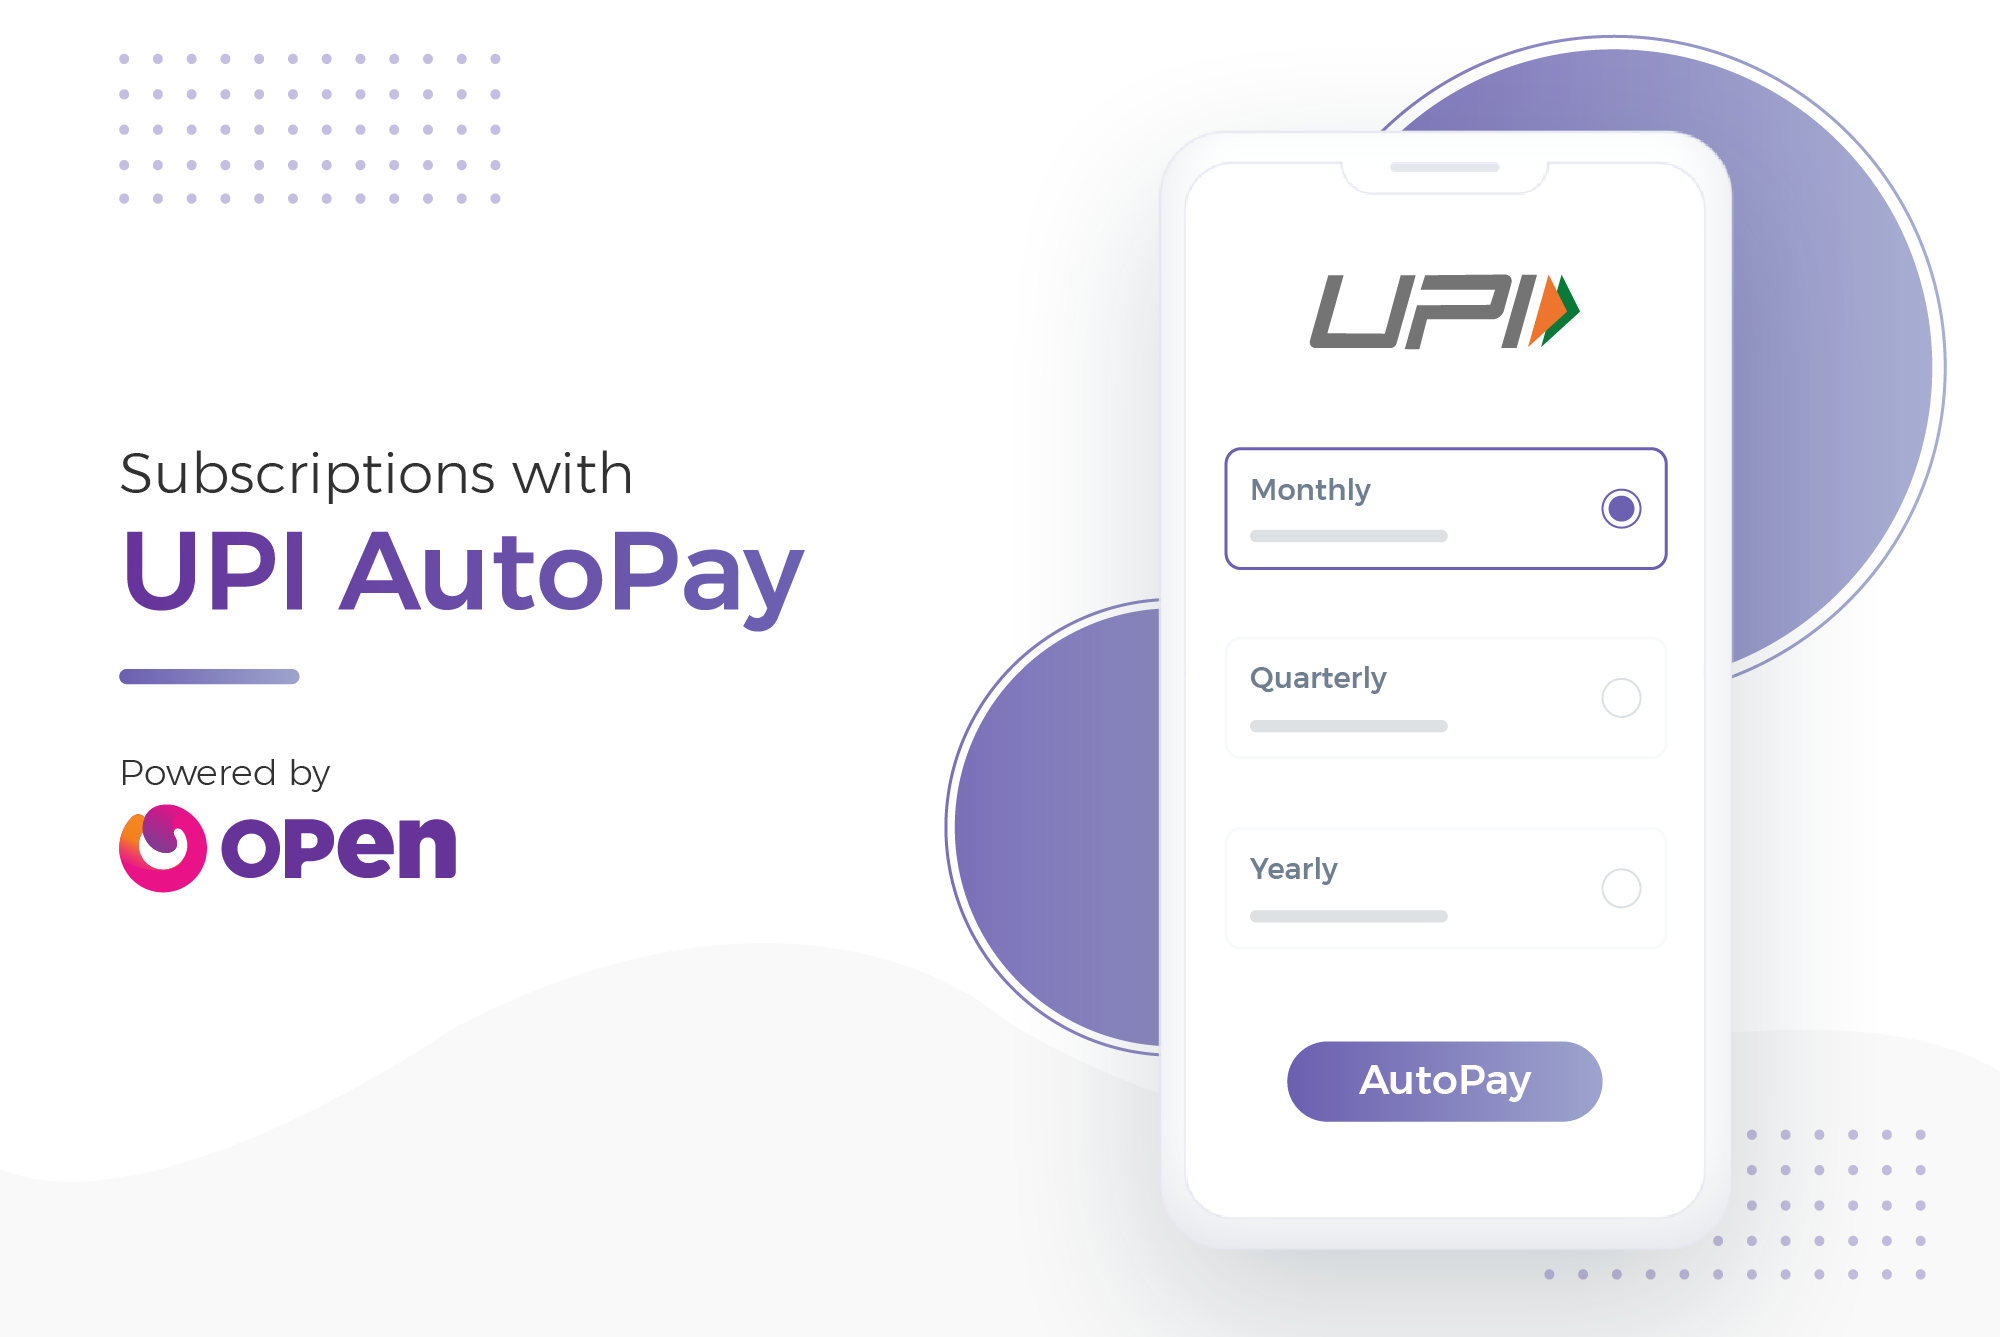 Open to revolutionize recurring payments for small businesses with UPI AutoPay